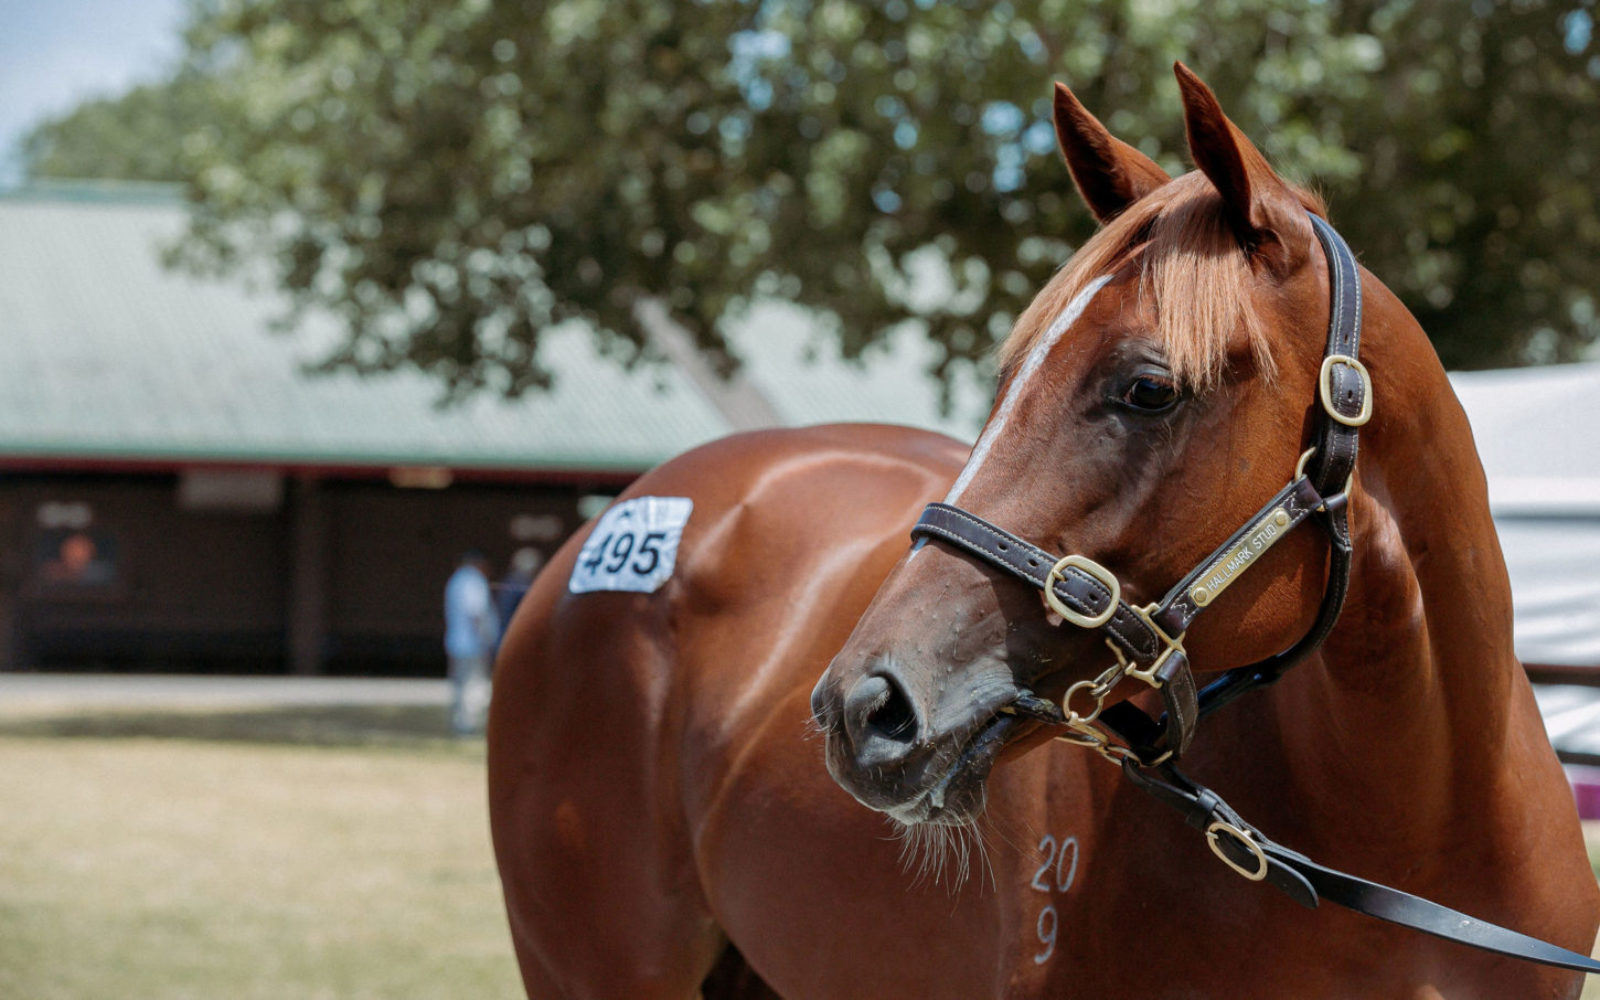 KARAKA – Lot 495 Almanzor (FR) – Lady Royale (NZ), Chestnut Filly